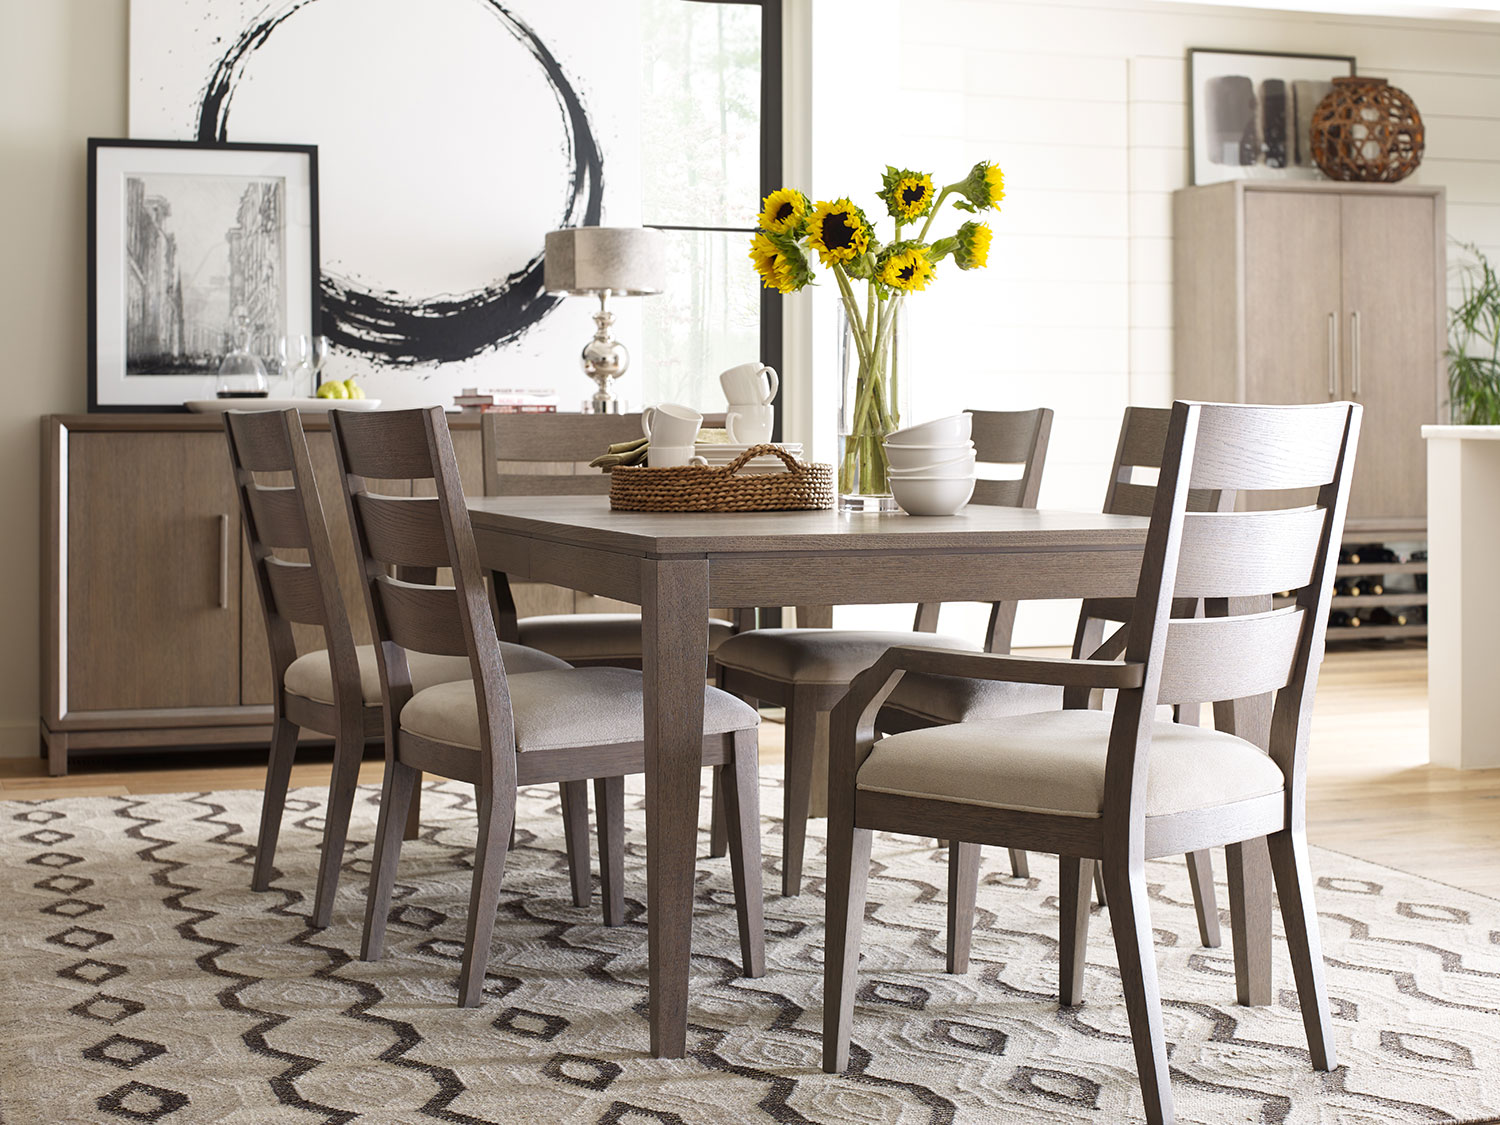 The rachael ray highline dining room collection greige